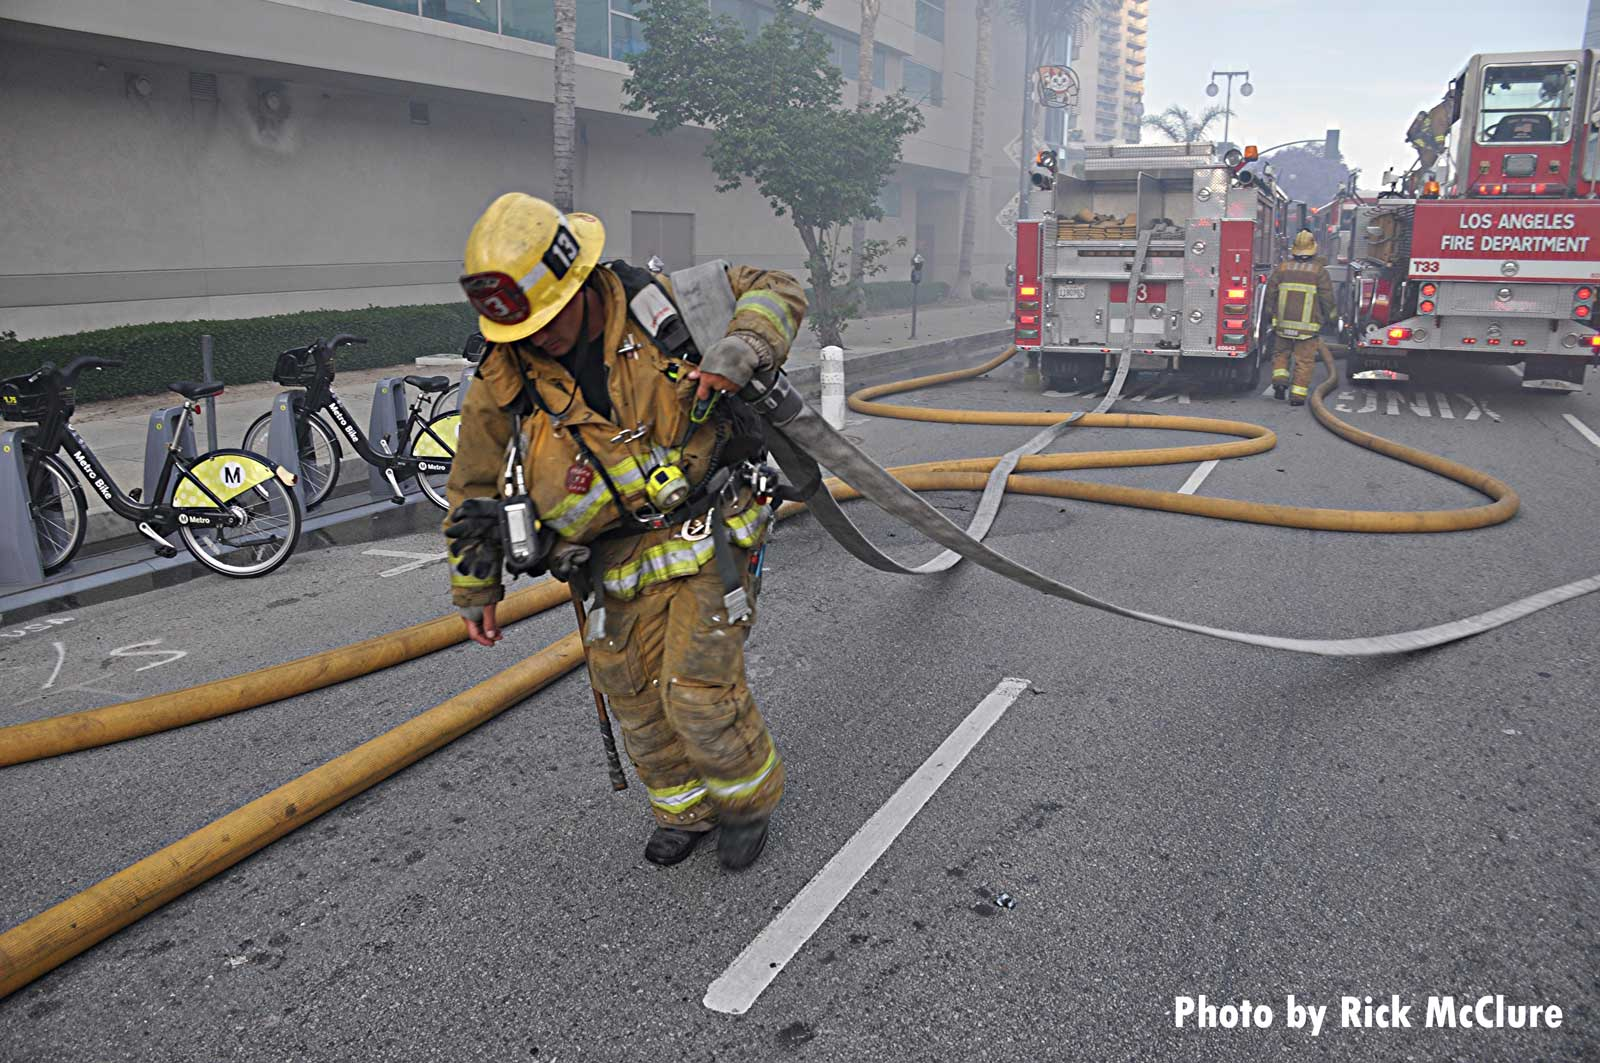 Firefighter hauls hoselines at explosion in downtown Los Angeles